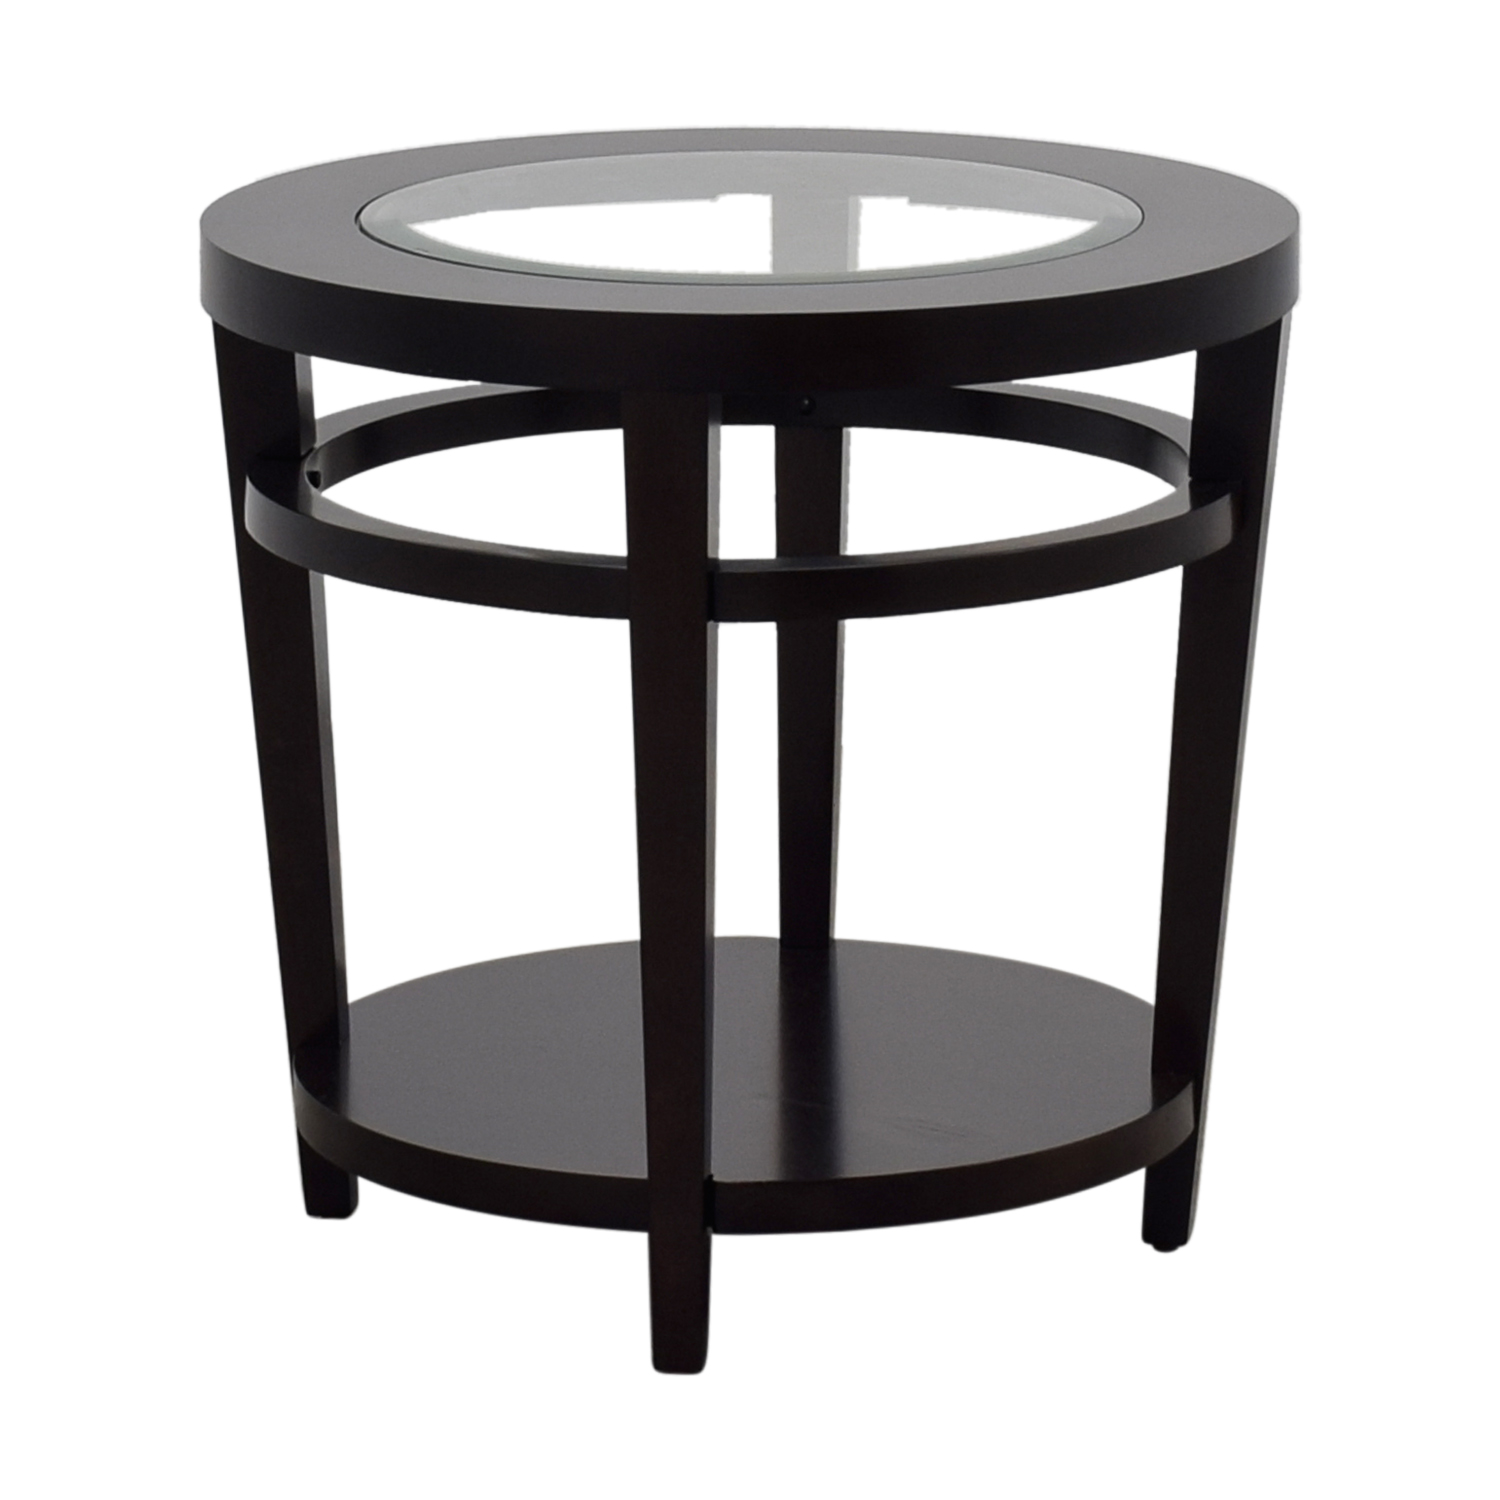 off macy avalon round wood and glass side table tables macys second hand accent nyc west elm storage bench small garden cover pier imports furniture beach kitchen decor nesting